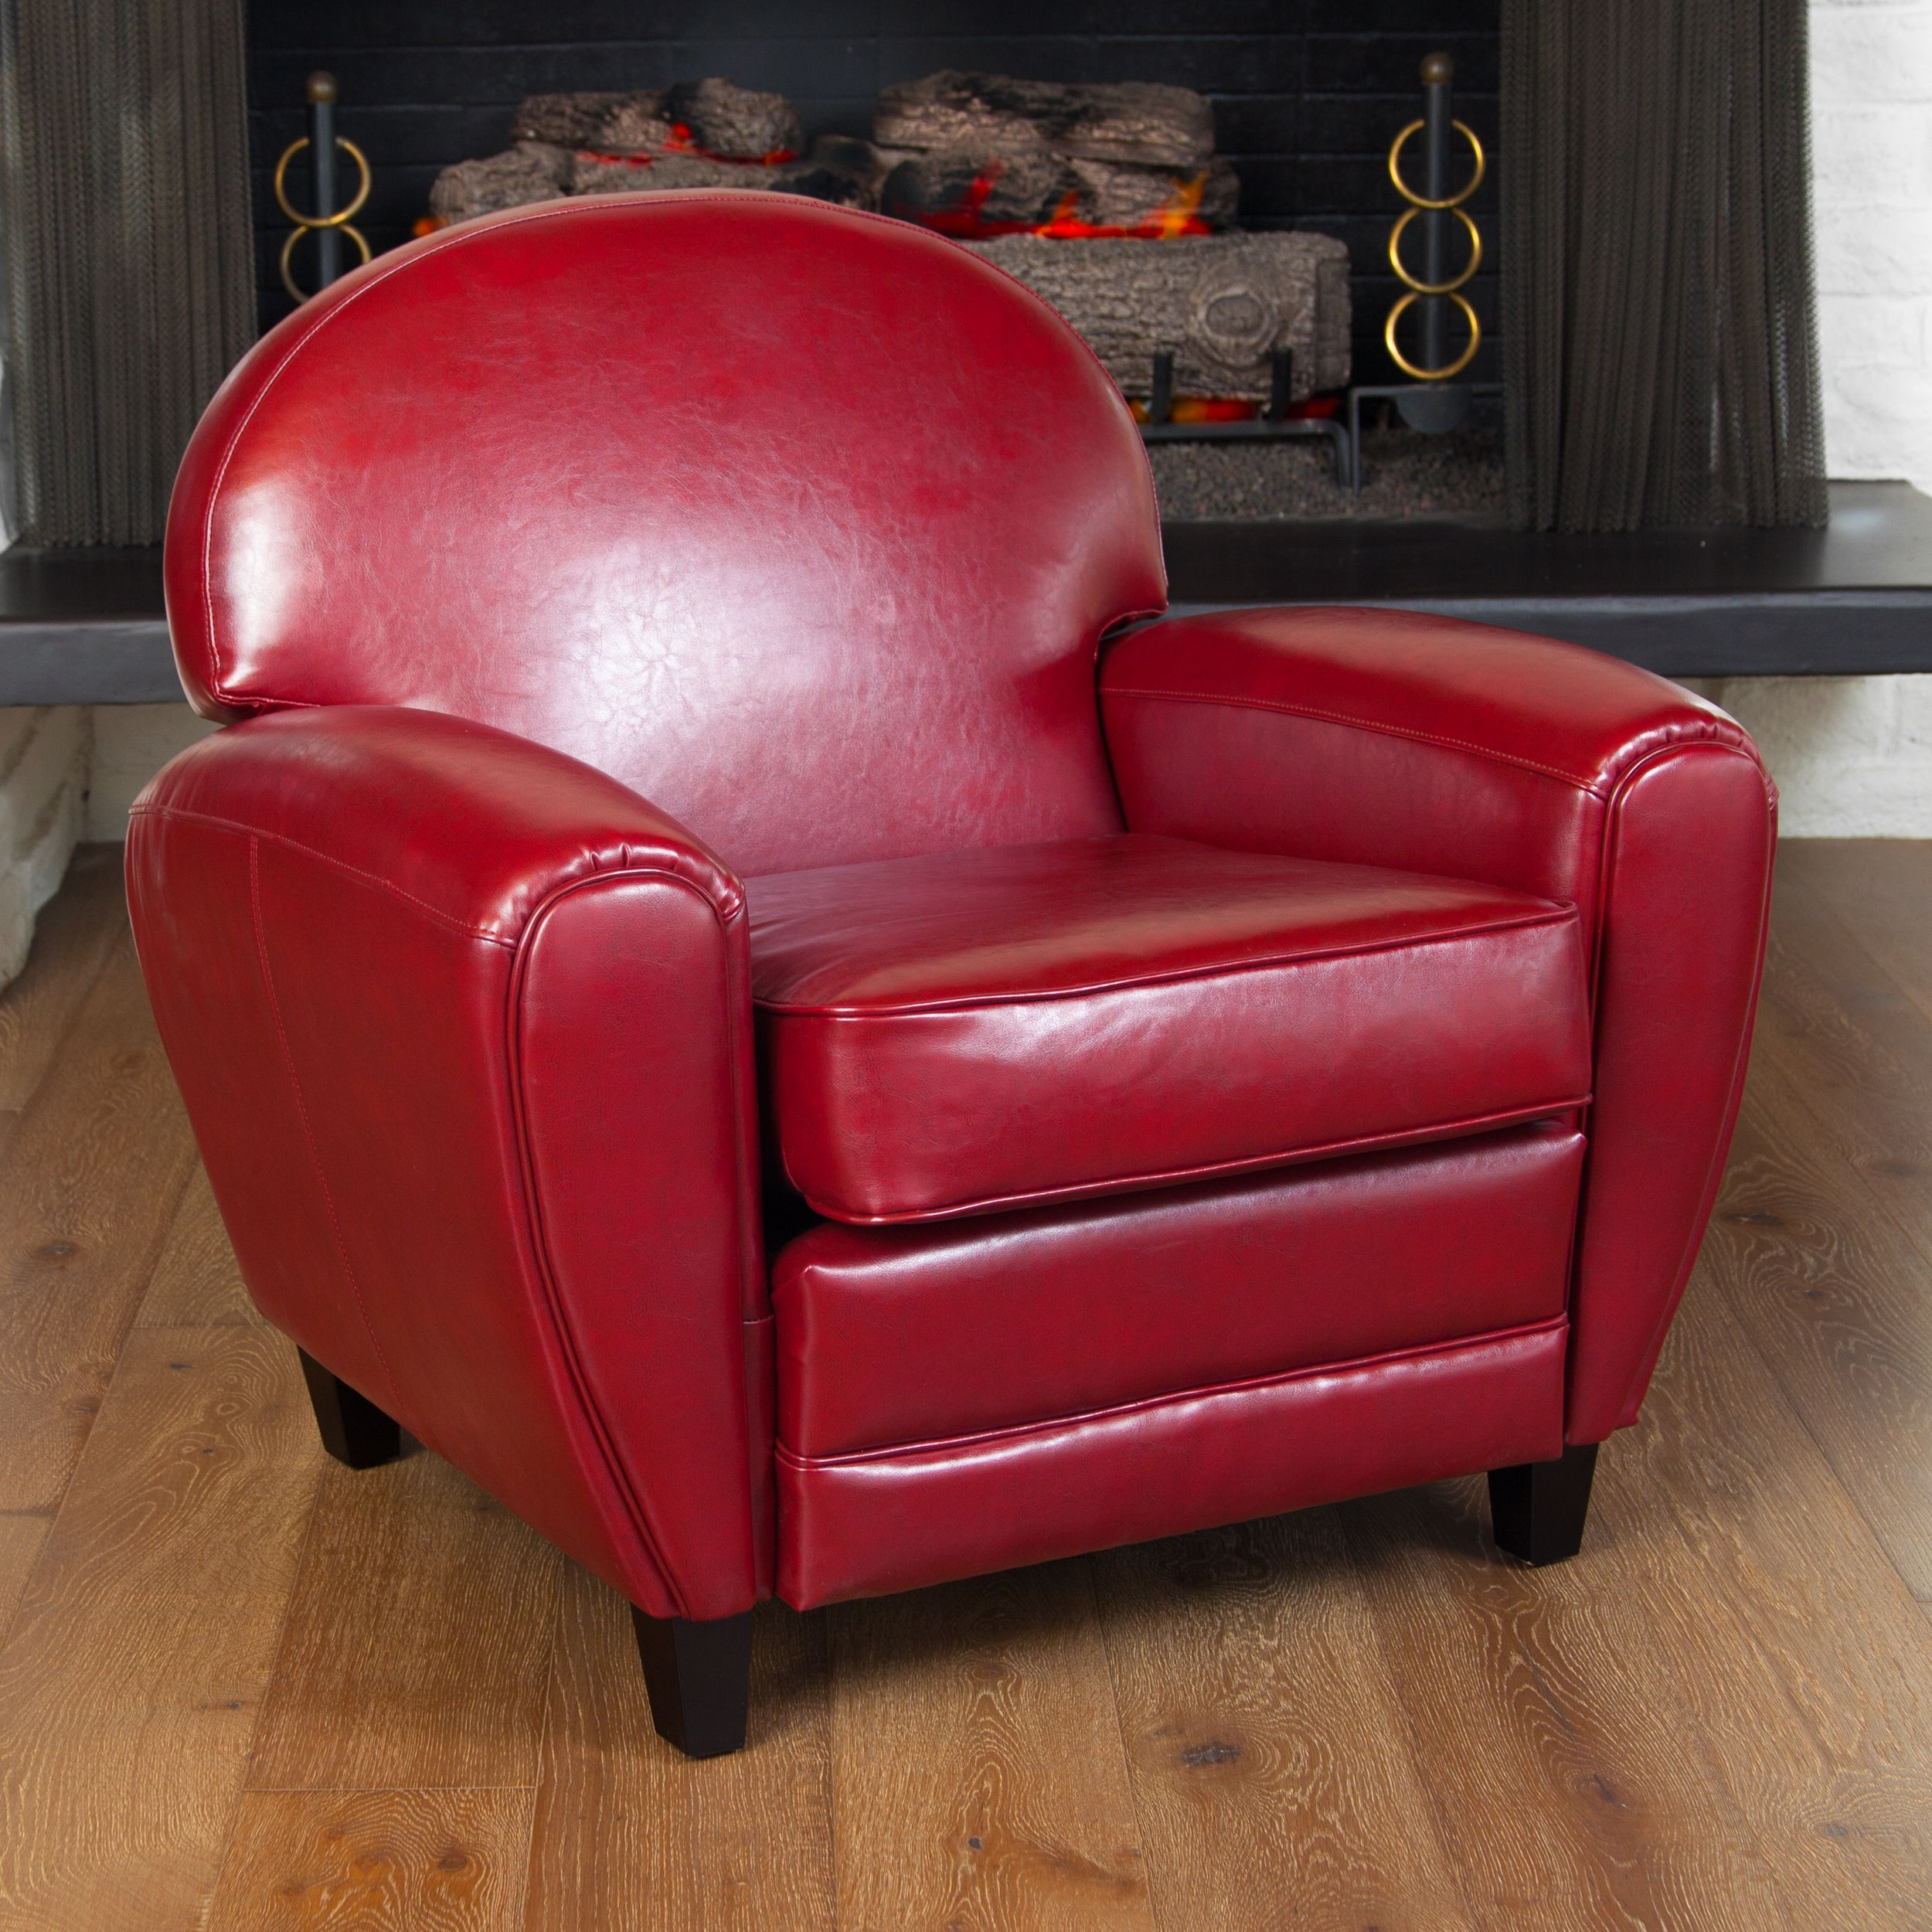 This Comfortable Oversized Red Leather Chair Makes An Audacious Statement  In Your Home. Enjoy This